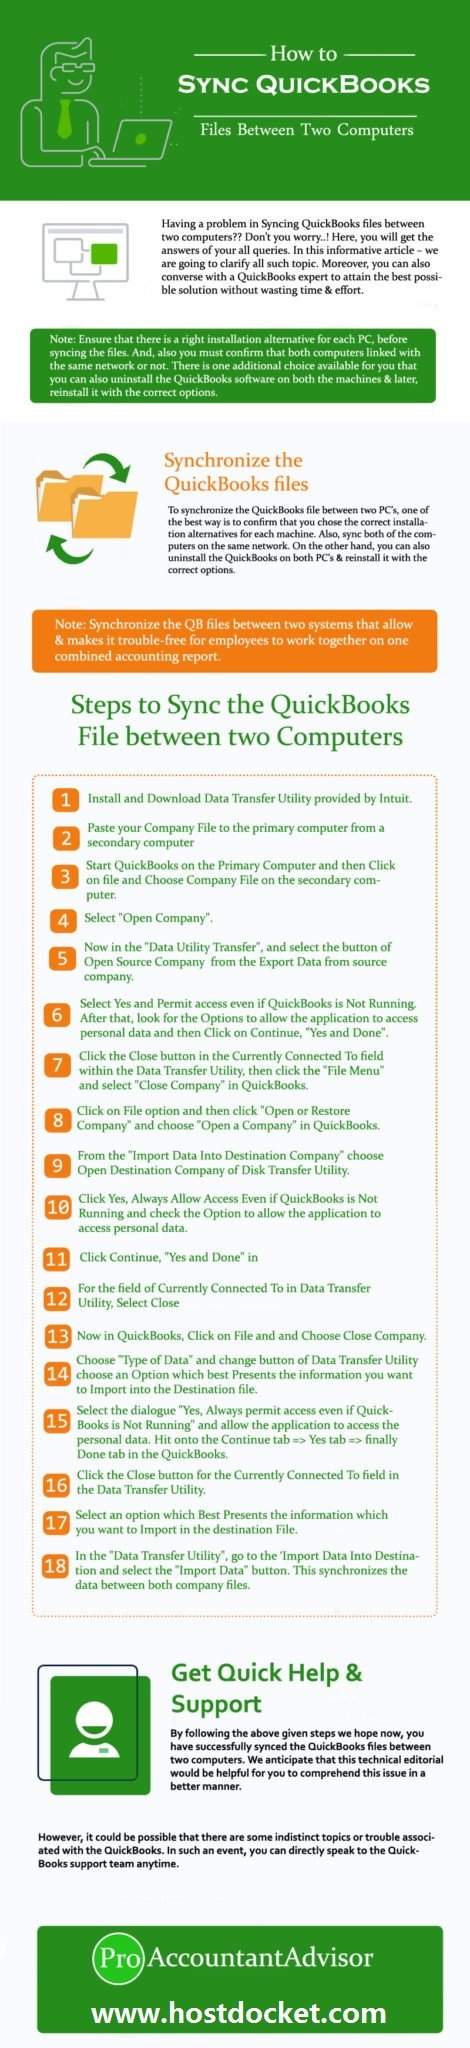 Steps to Sync QuickBooks Files Between Two Computers - Infographic